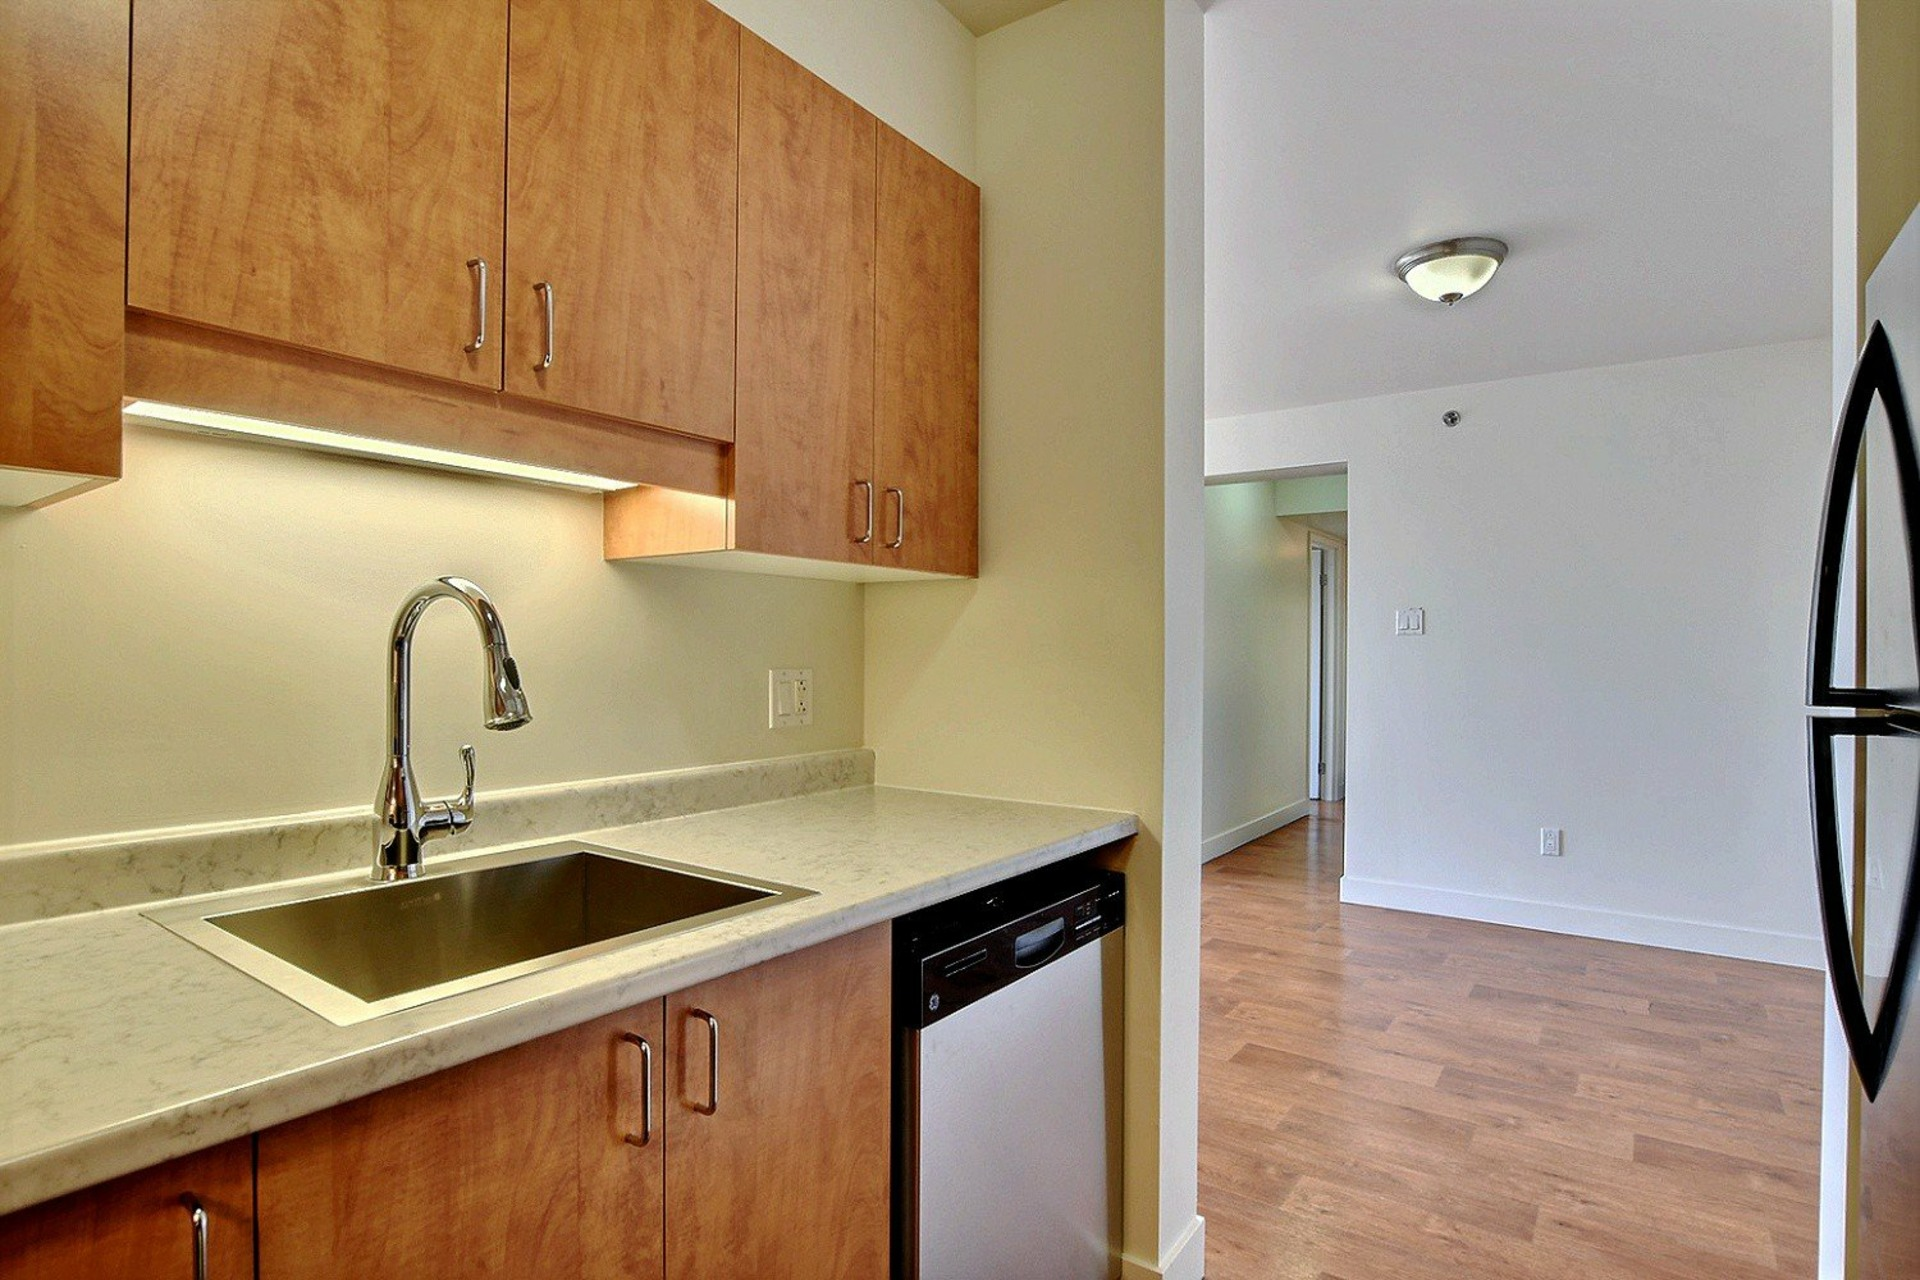 image 9 - Apartment For rent Brossard - 7 rooms